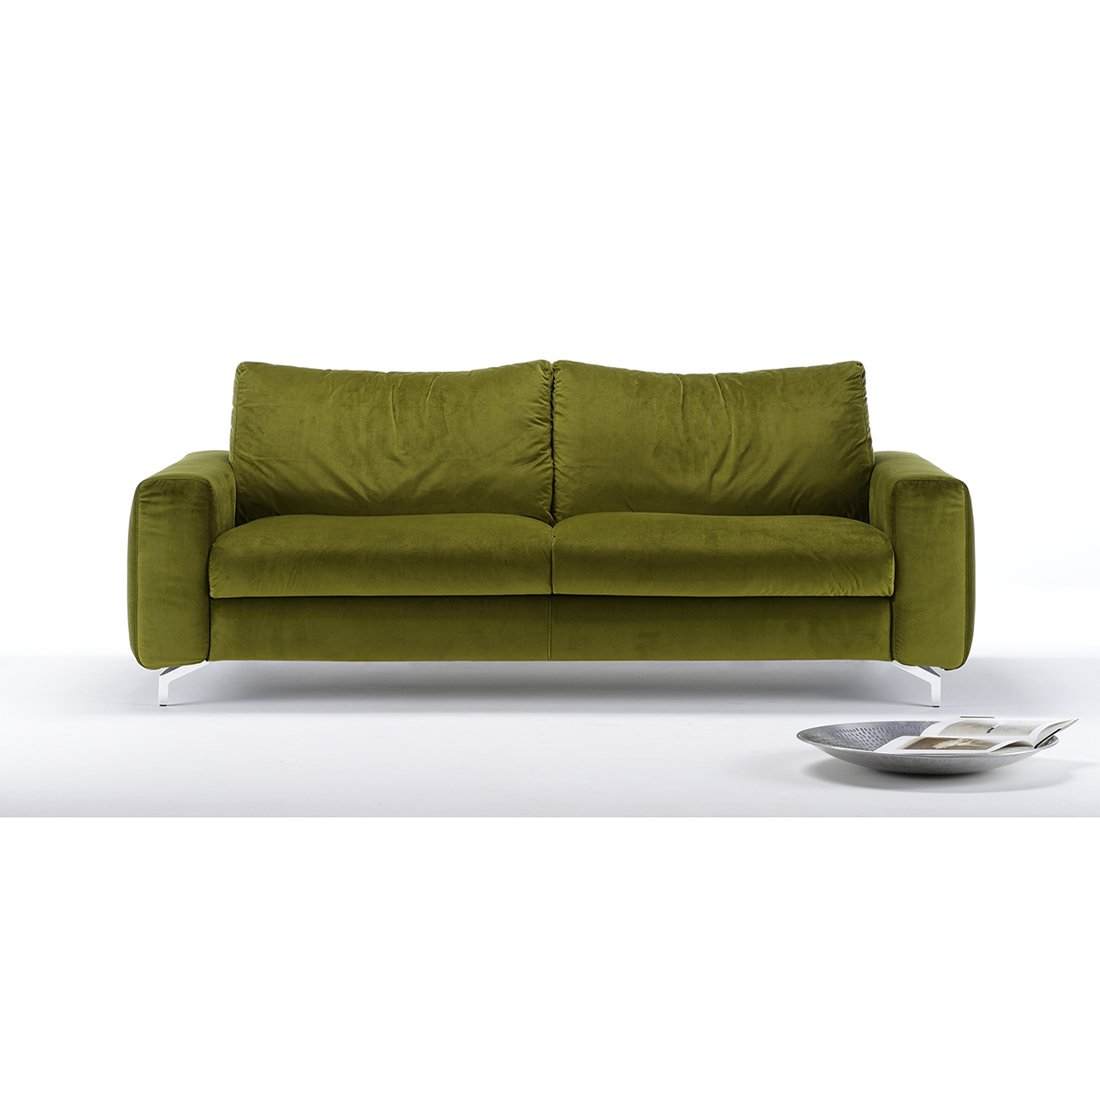 Canap velours convertible clarence meubles et atmosph re for Canape velours vert